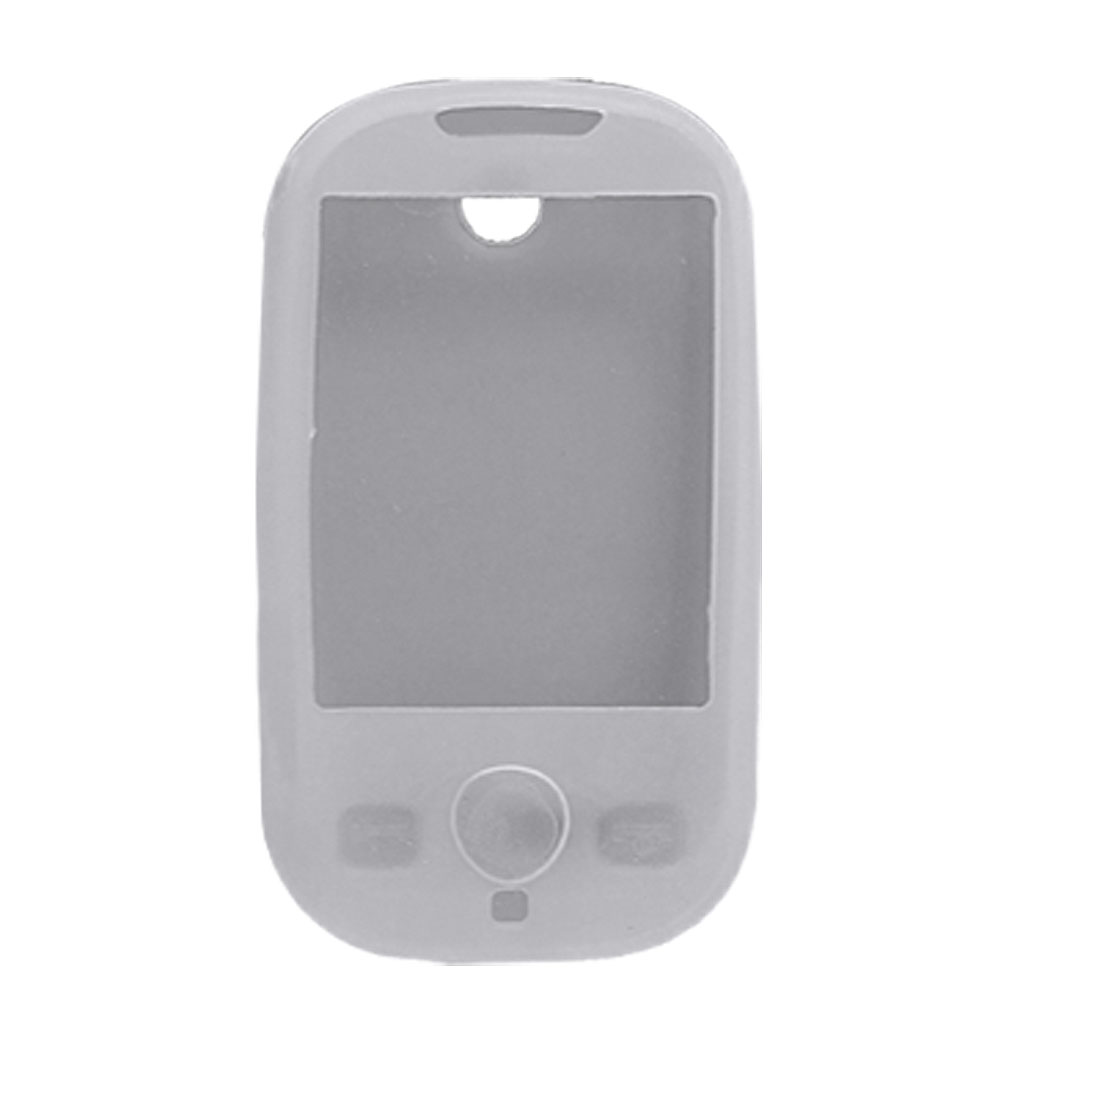 White Silicone Skin Back Case Protector for Sumsung S3650 Corby